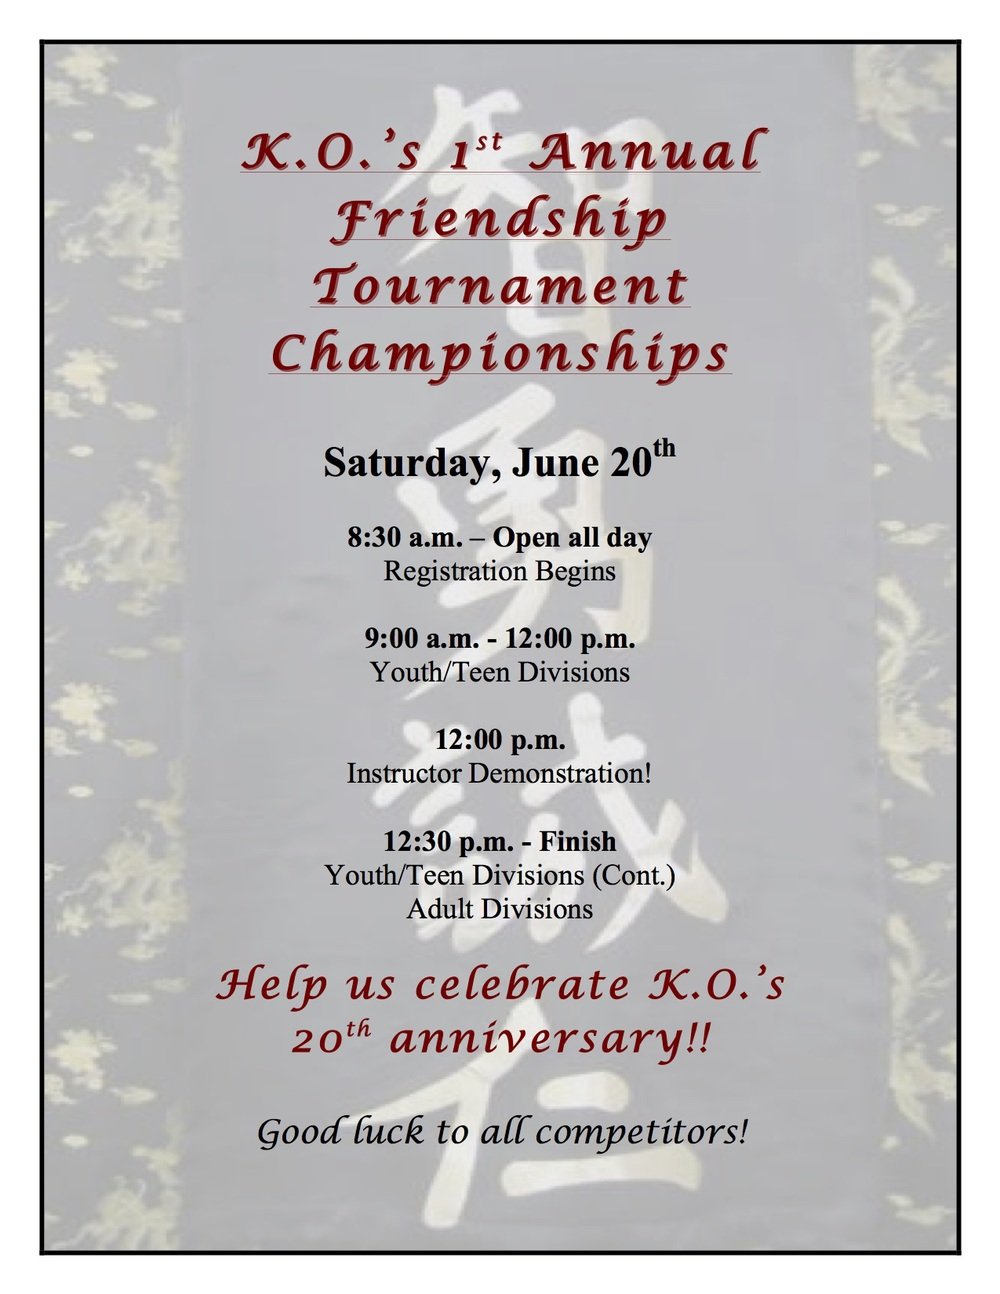 tournament flyer.jpg